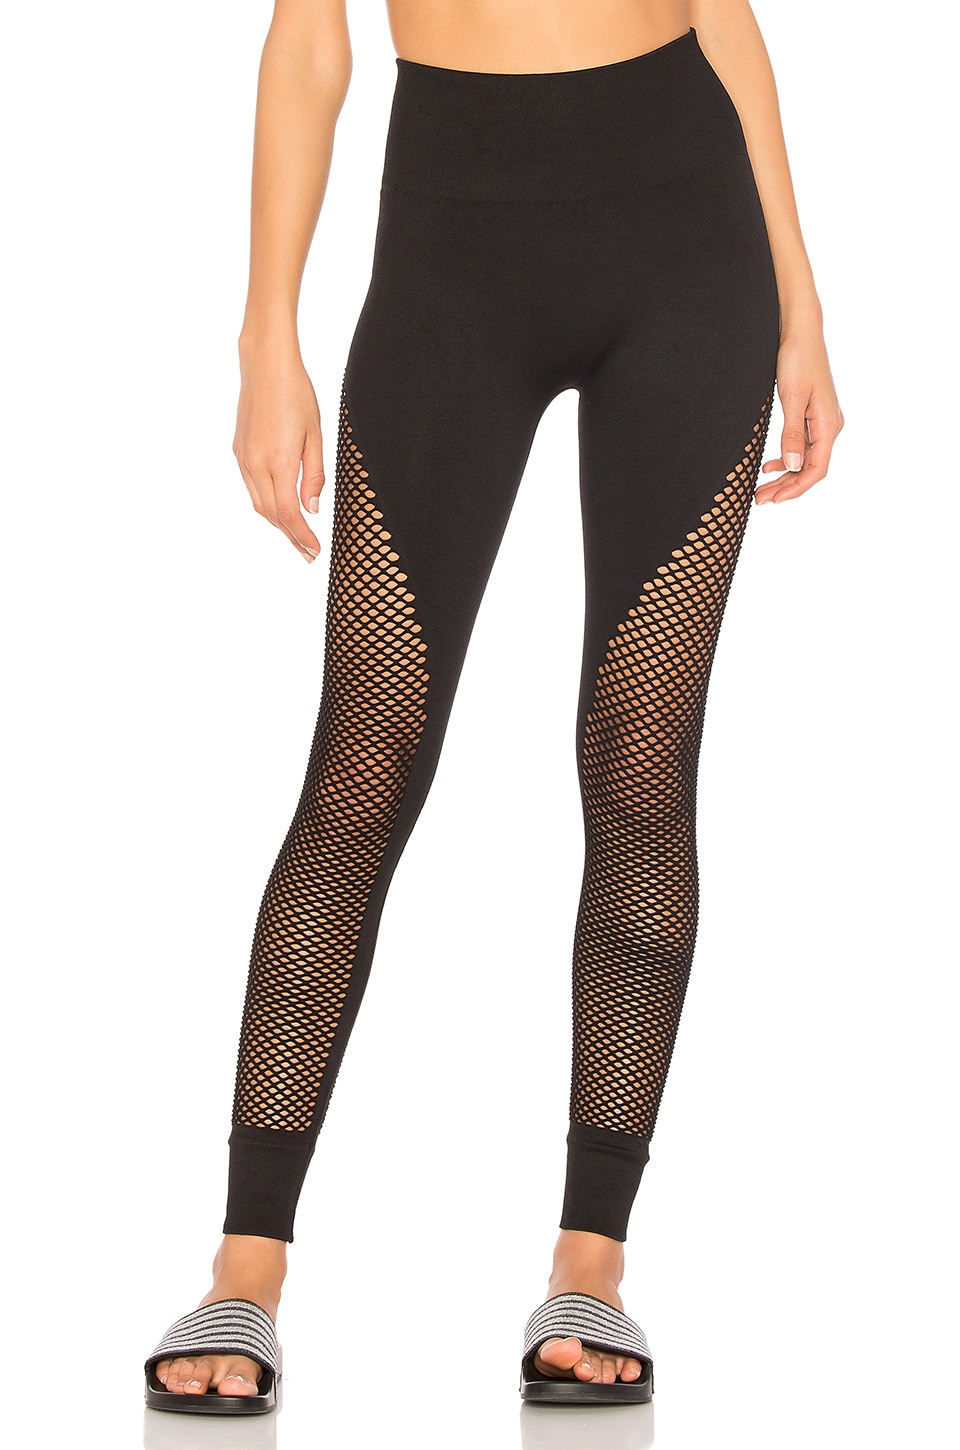 IVY PARK Mesh Legging in Black